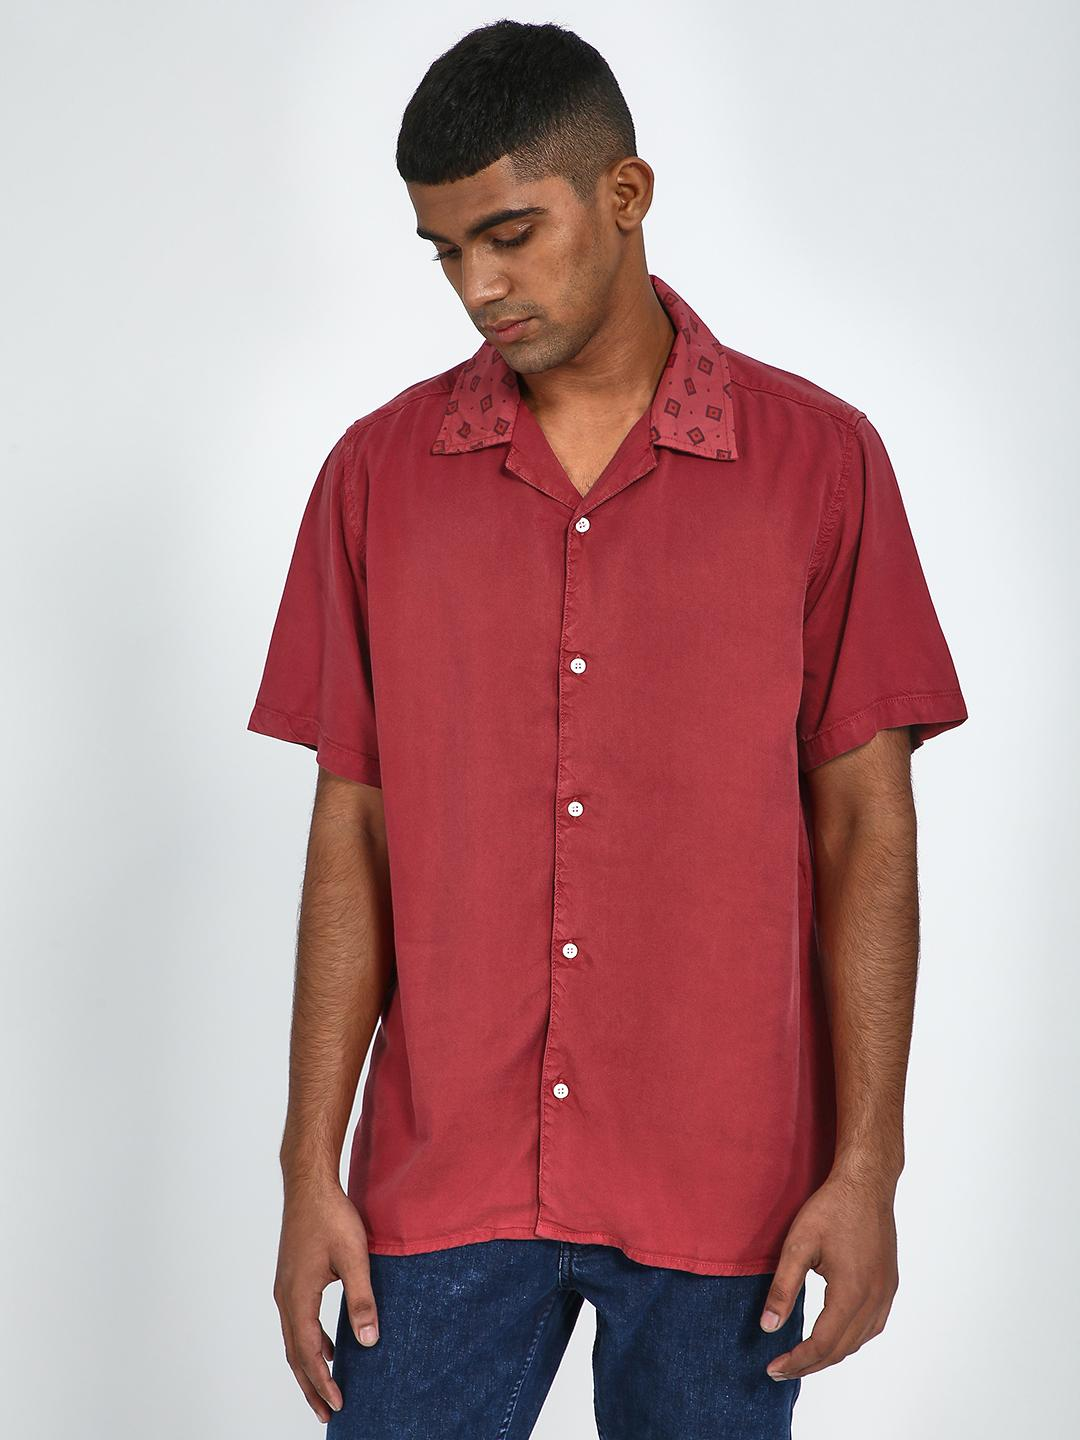 Blue Saint Red Contrast Collar Casual Shirt 1